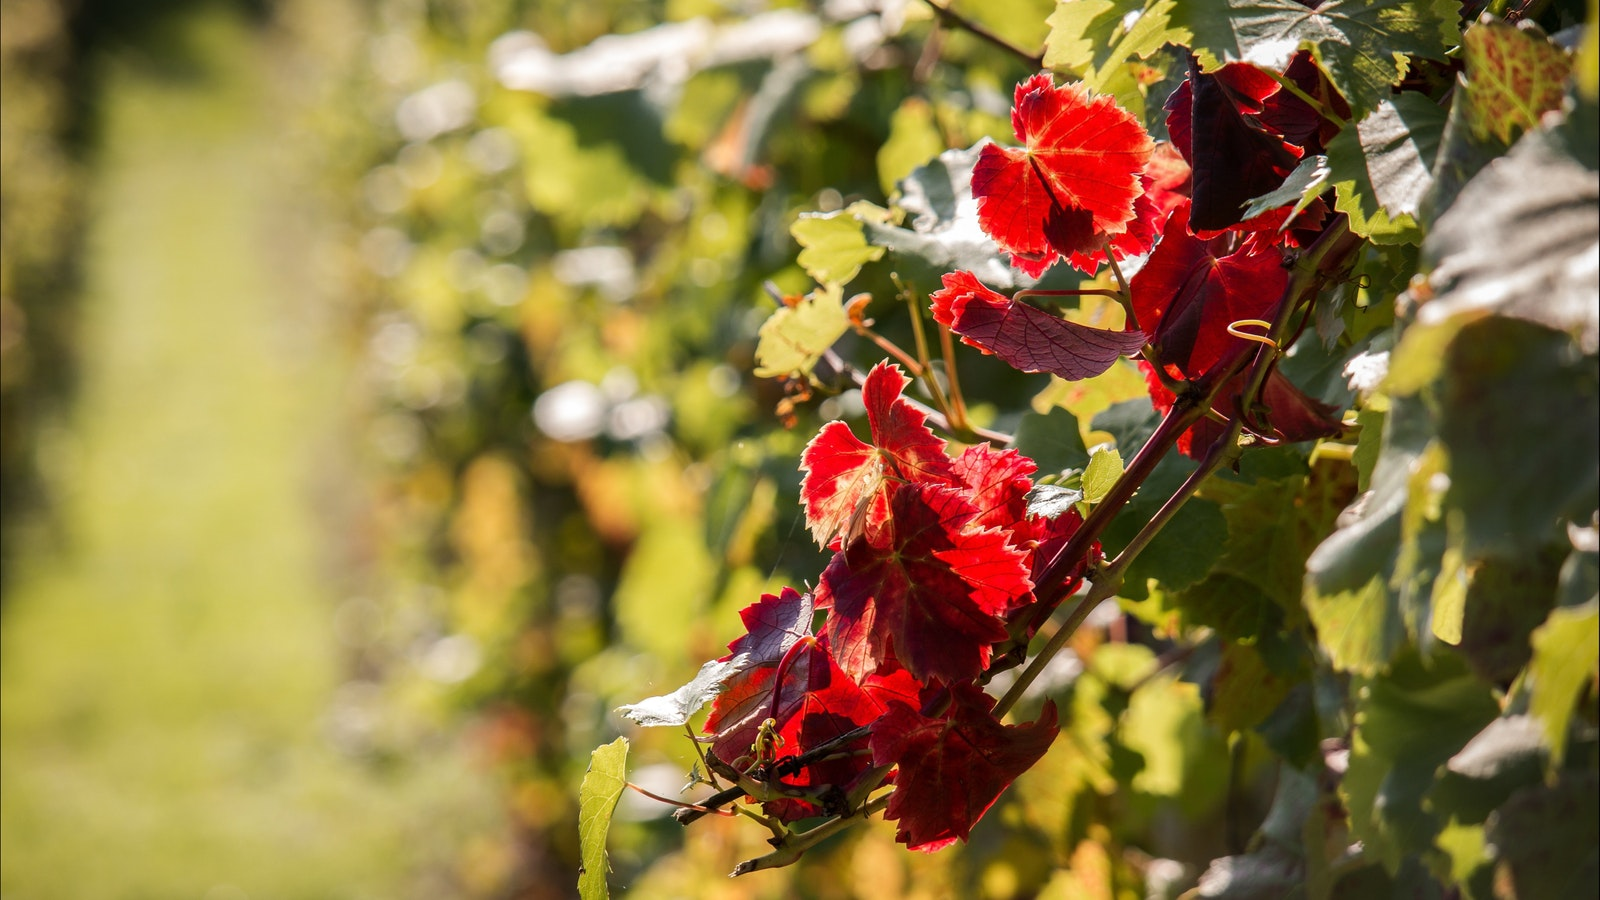 Experience some of the best wines in Australia